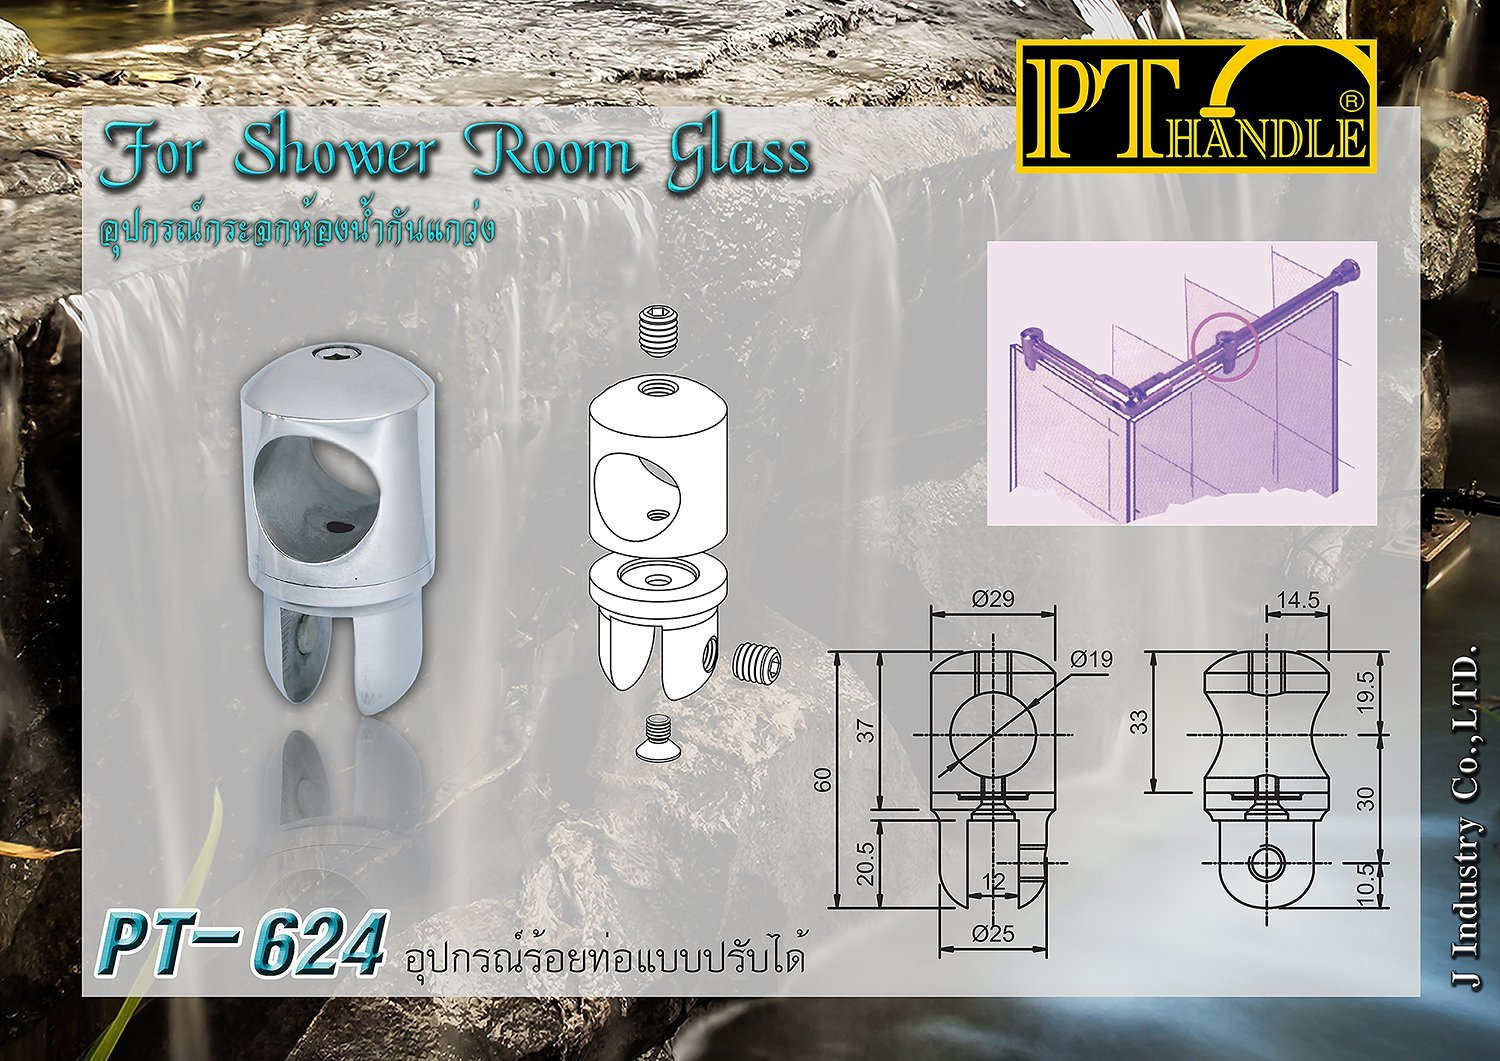 For Shower Room Glass (PT-624)